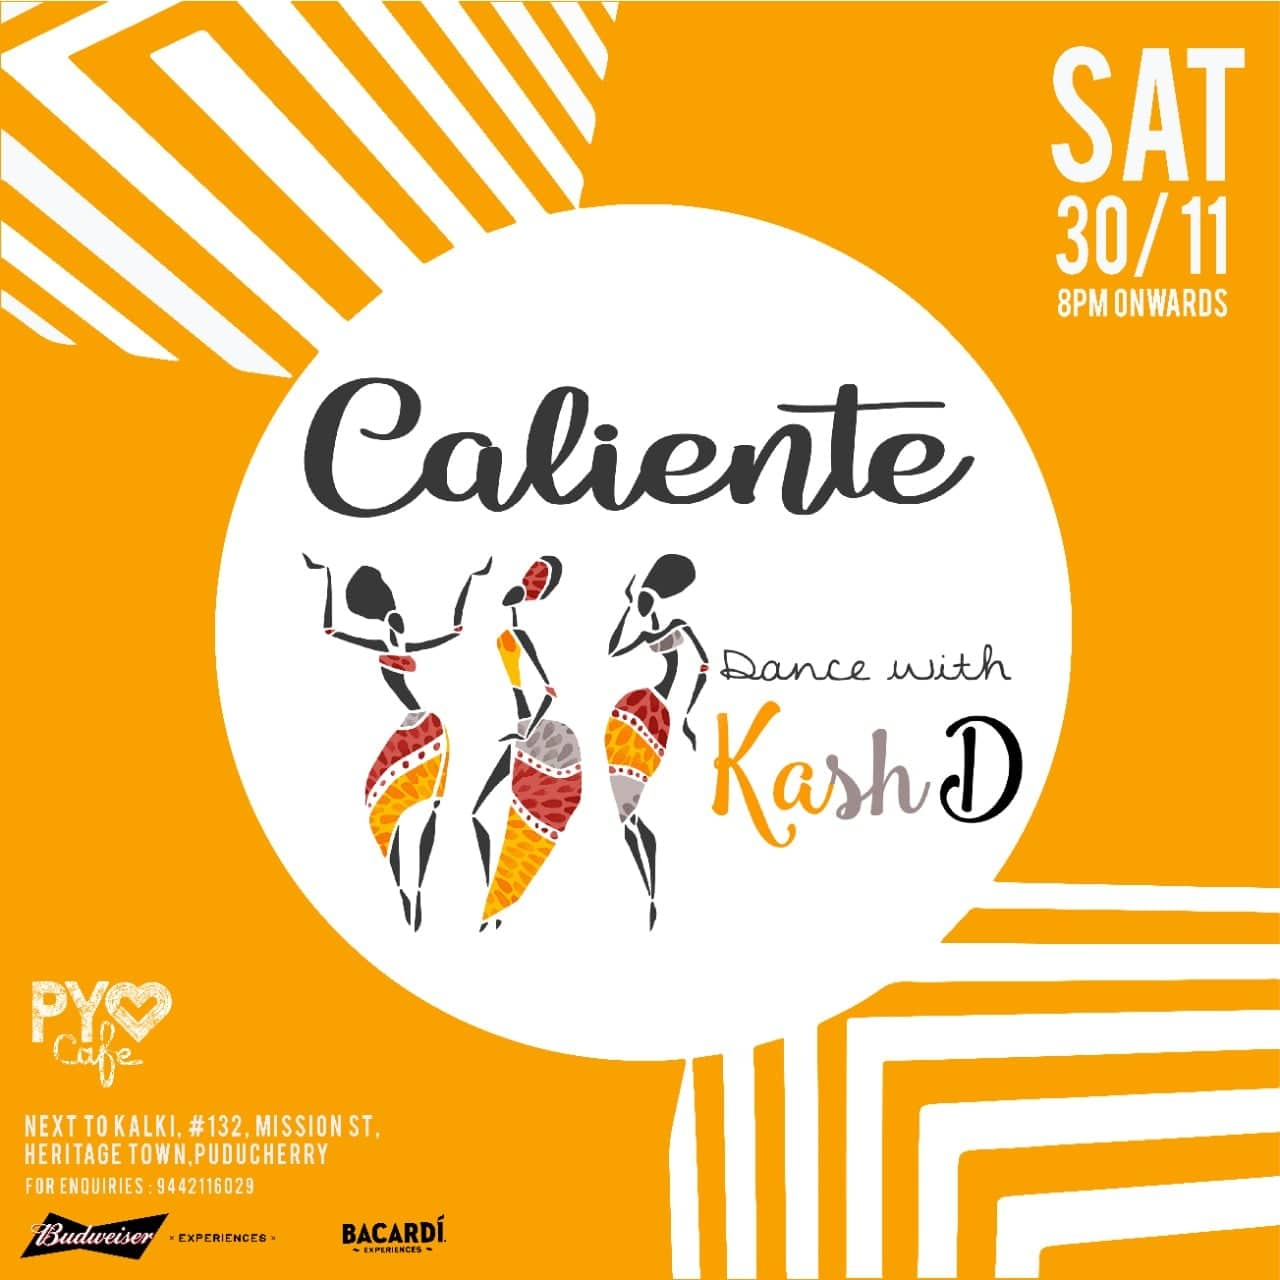 Caliente-Dance with Kash